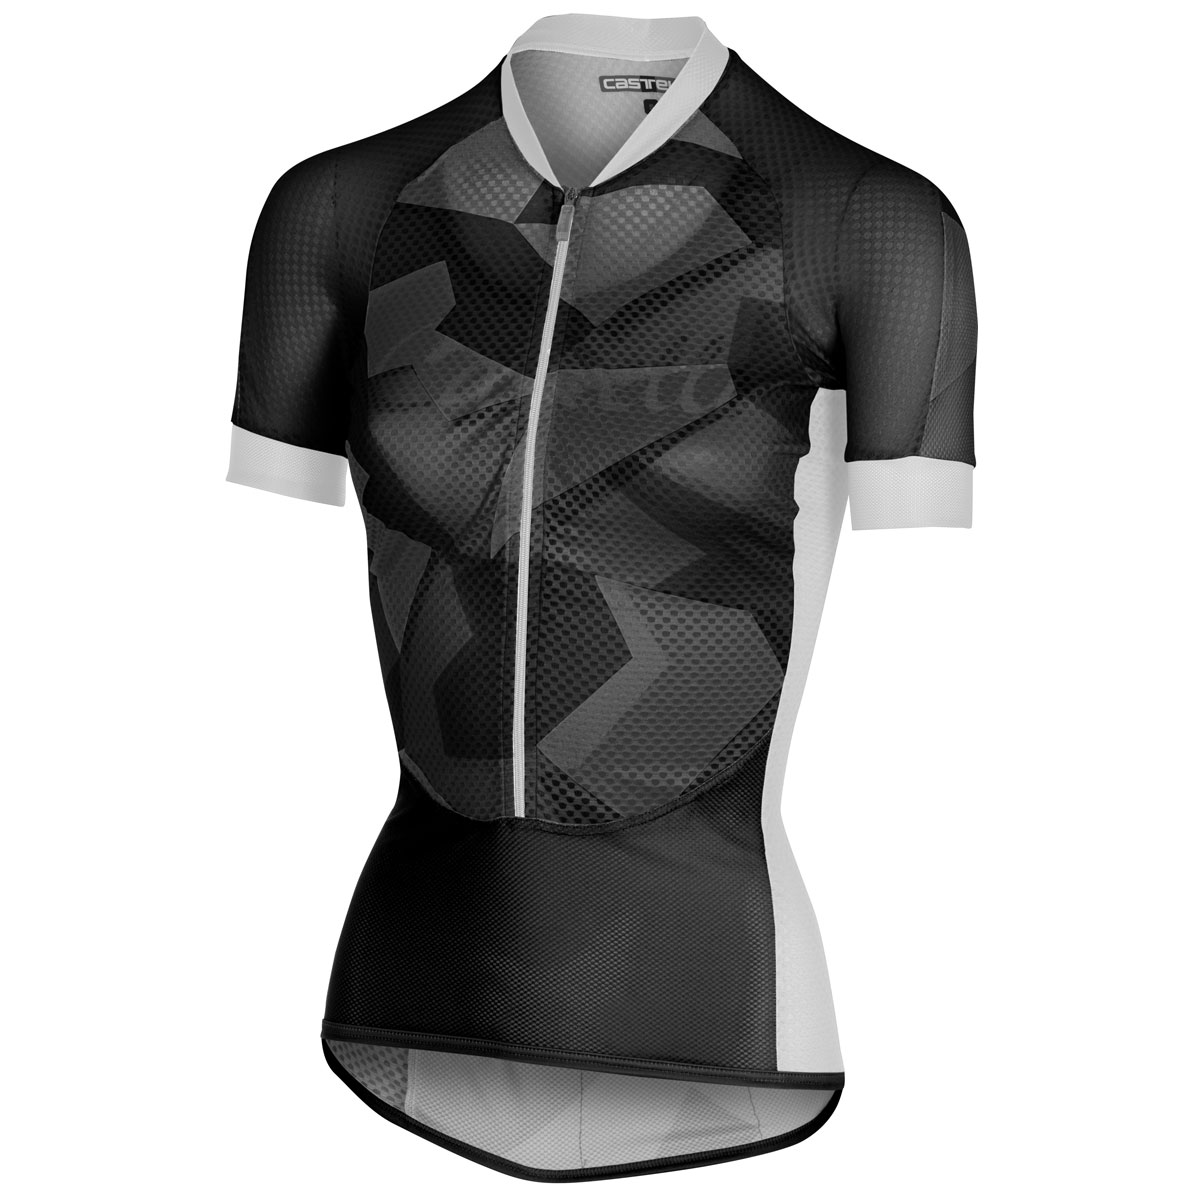 Maillot Ciclismo mujer Castelli Climber's Negro